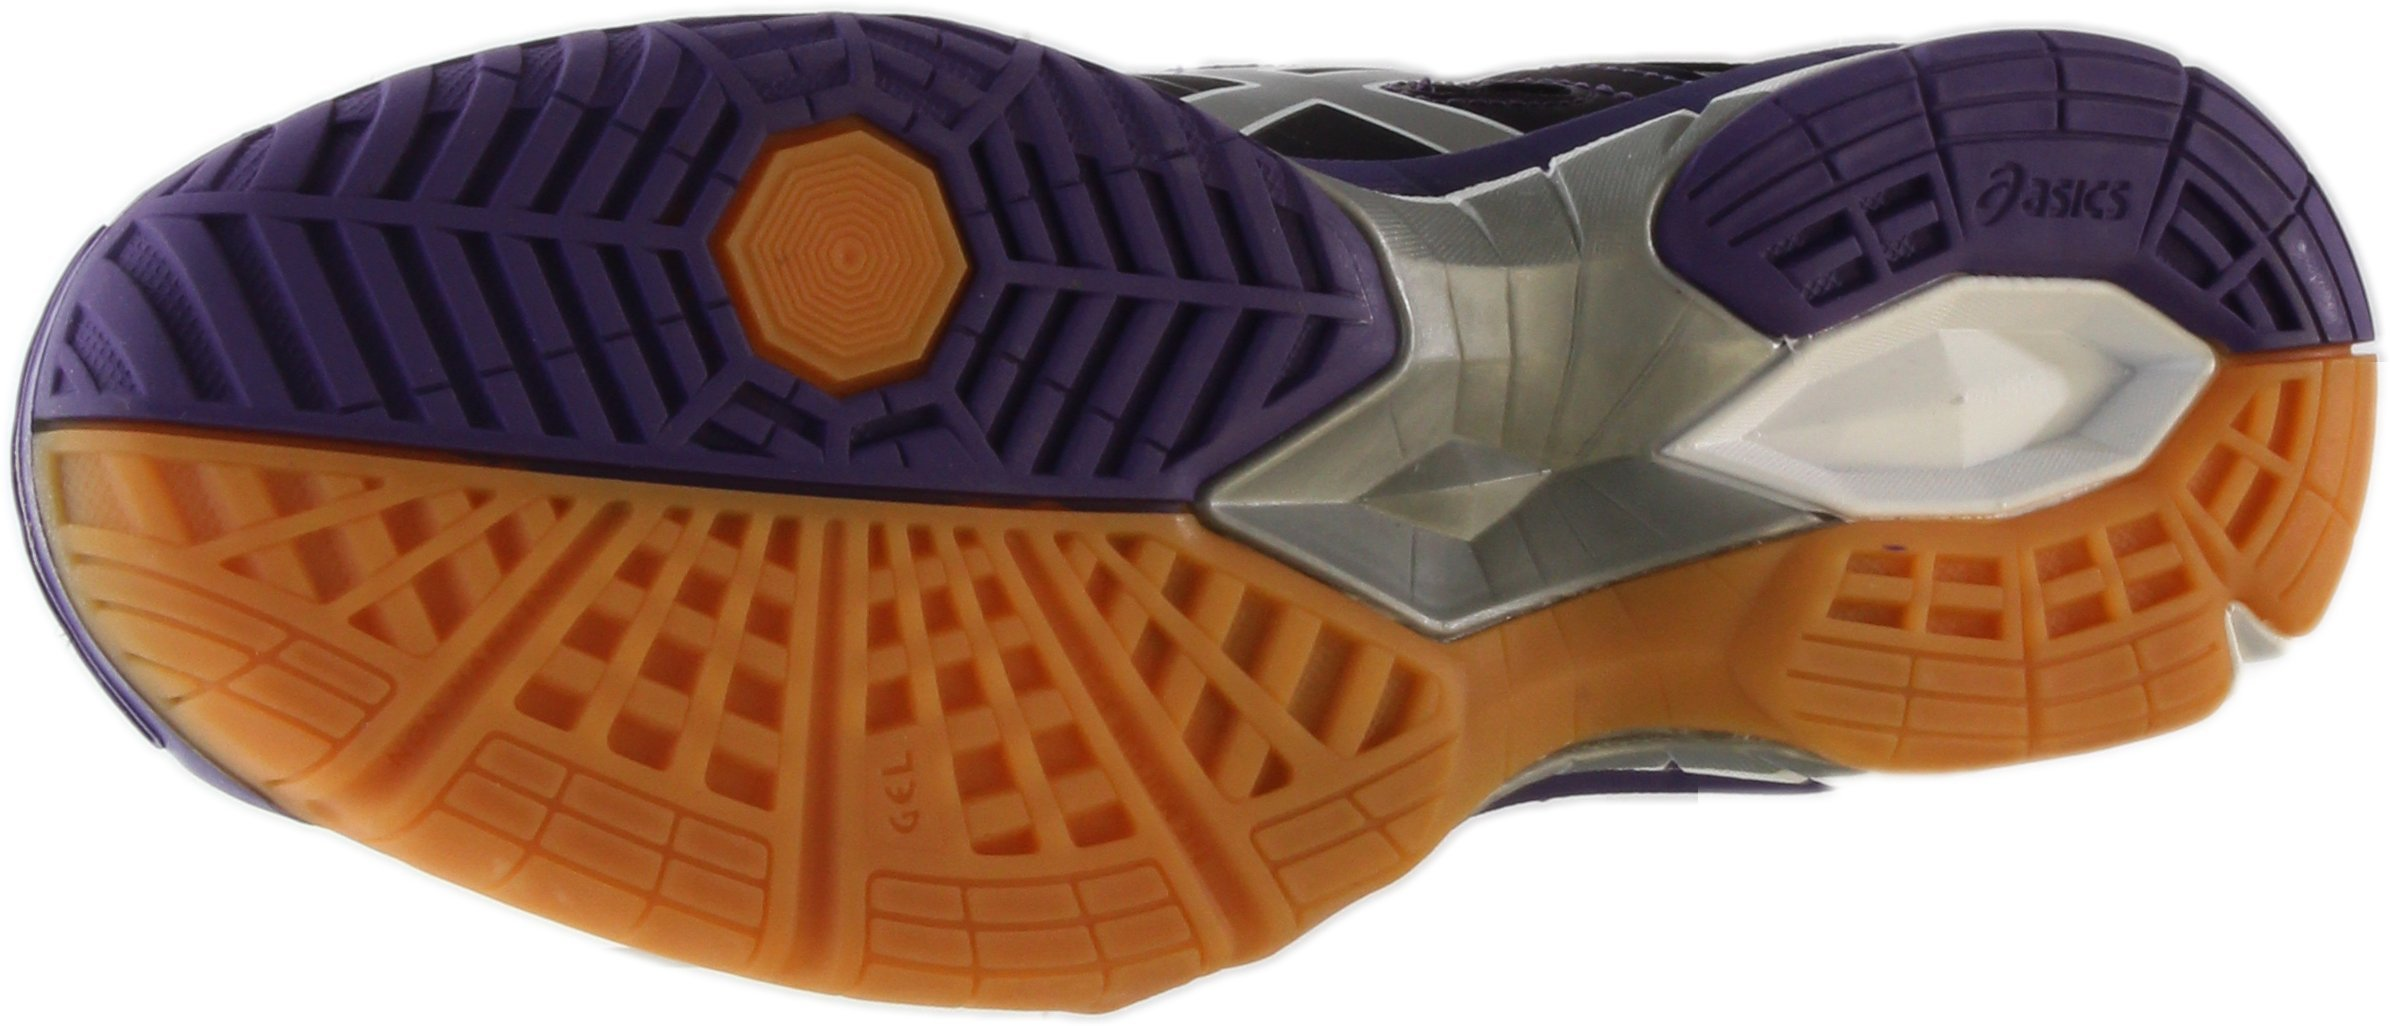 ASICS Women's Gel Tactic Volleyball Shoe, Purple/Silver/White, 9.5 M US by ASICS (Image #7)